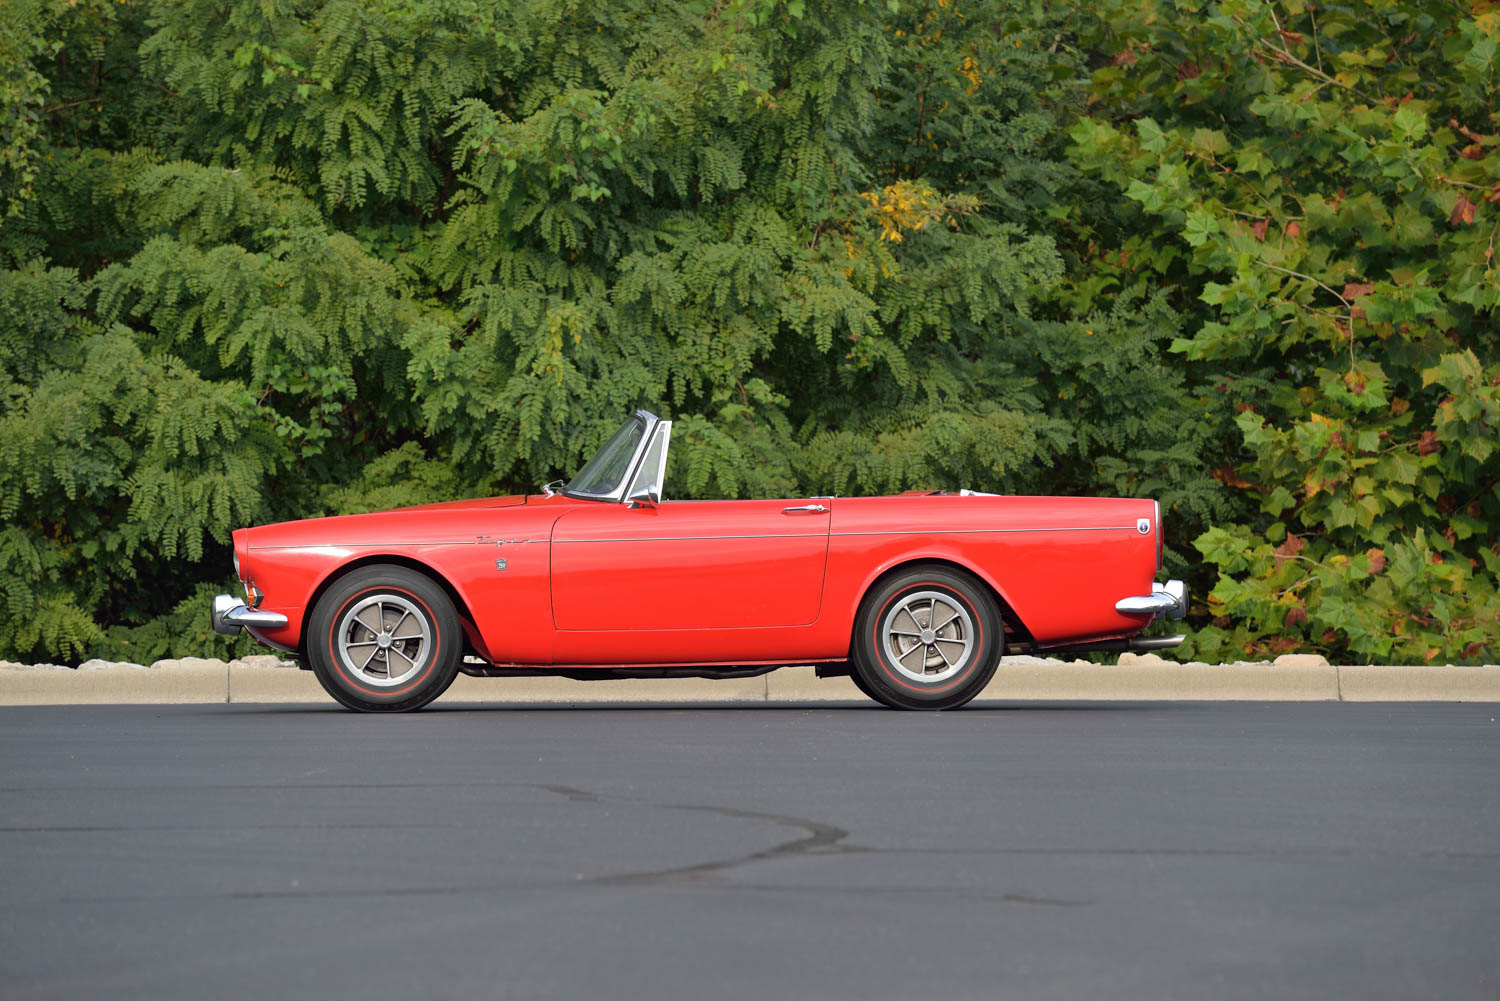 1965 Sunbeam Tiger MKI side